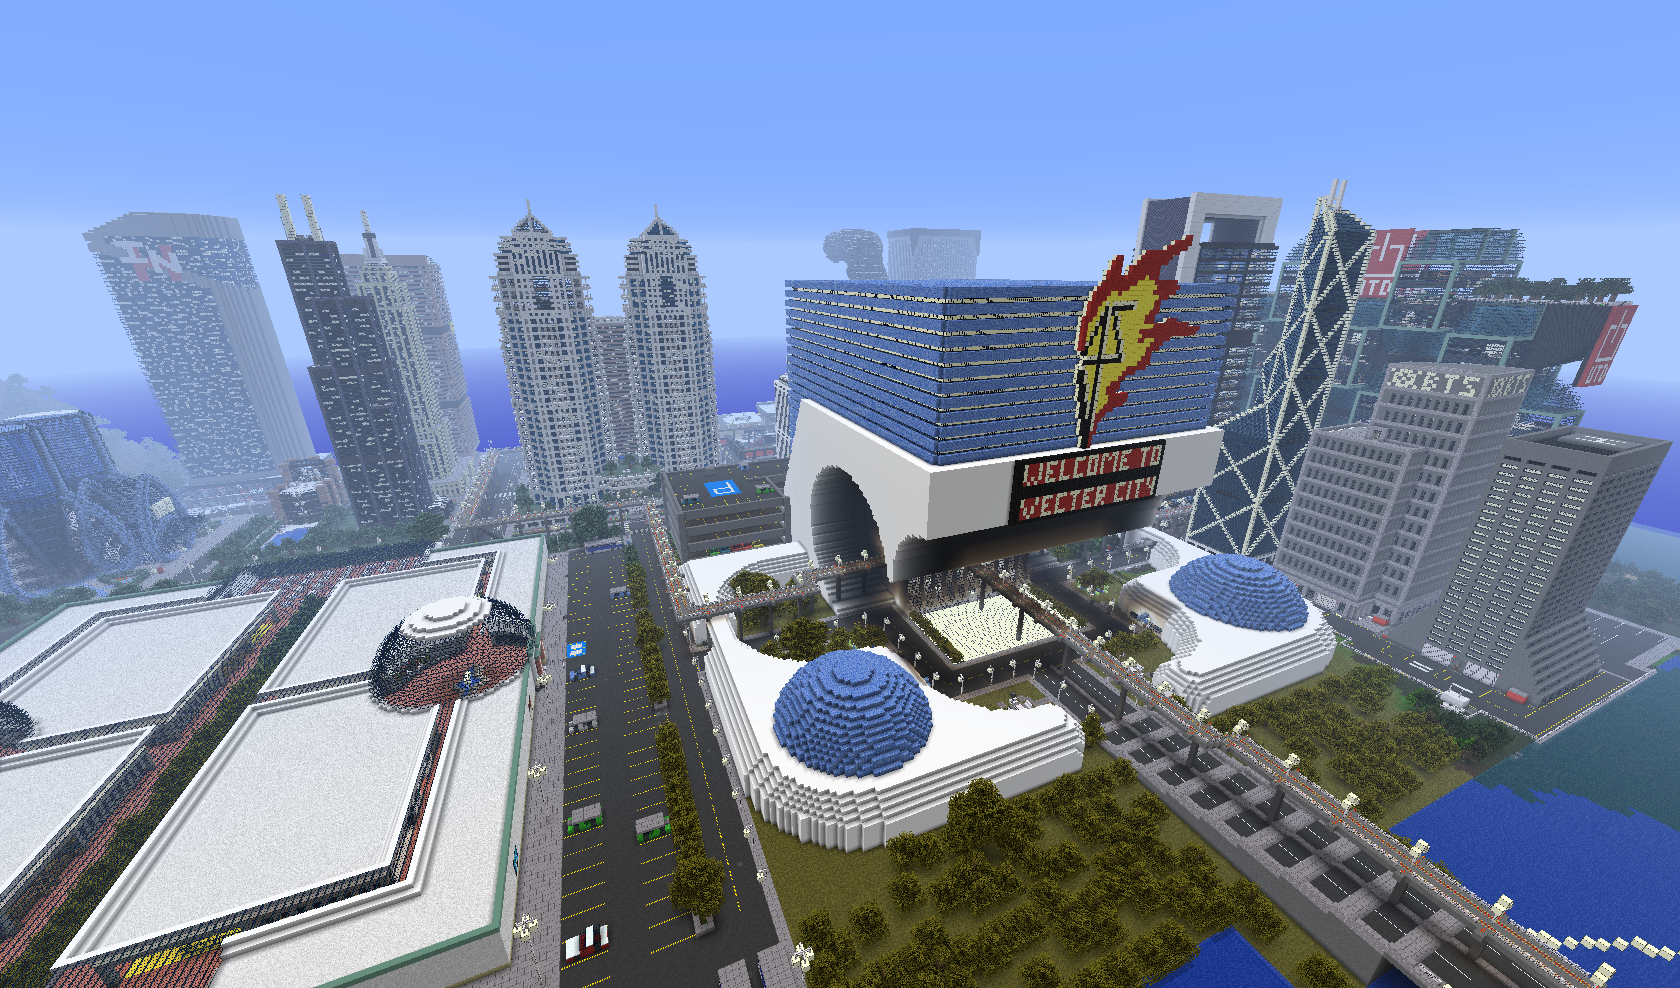 Map-ville-newcraft-vecter-city-minecraft-centre-ville